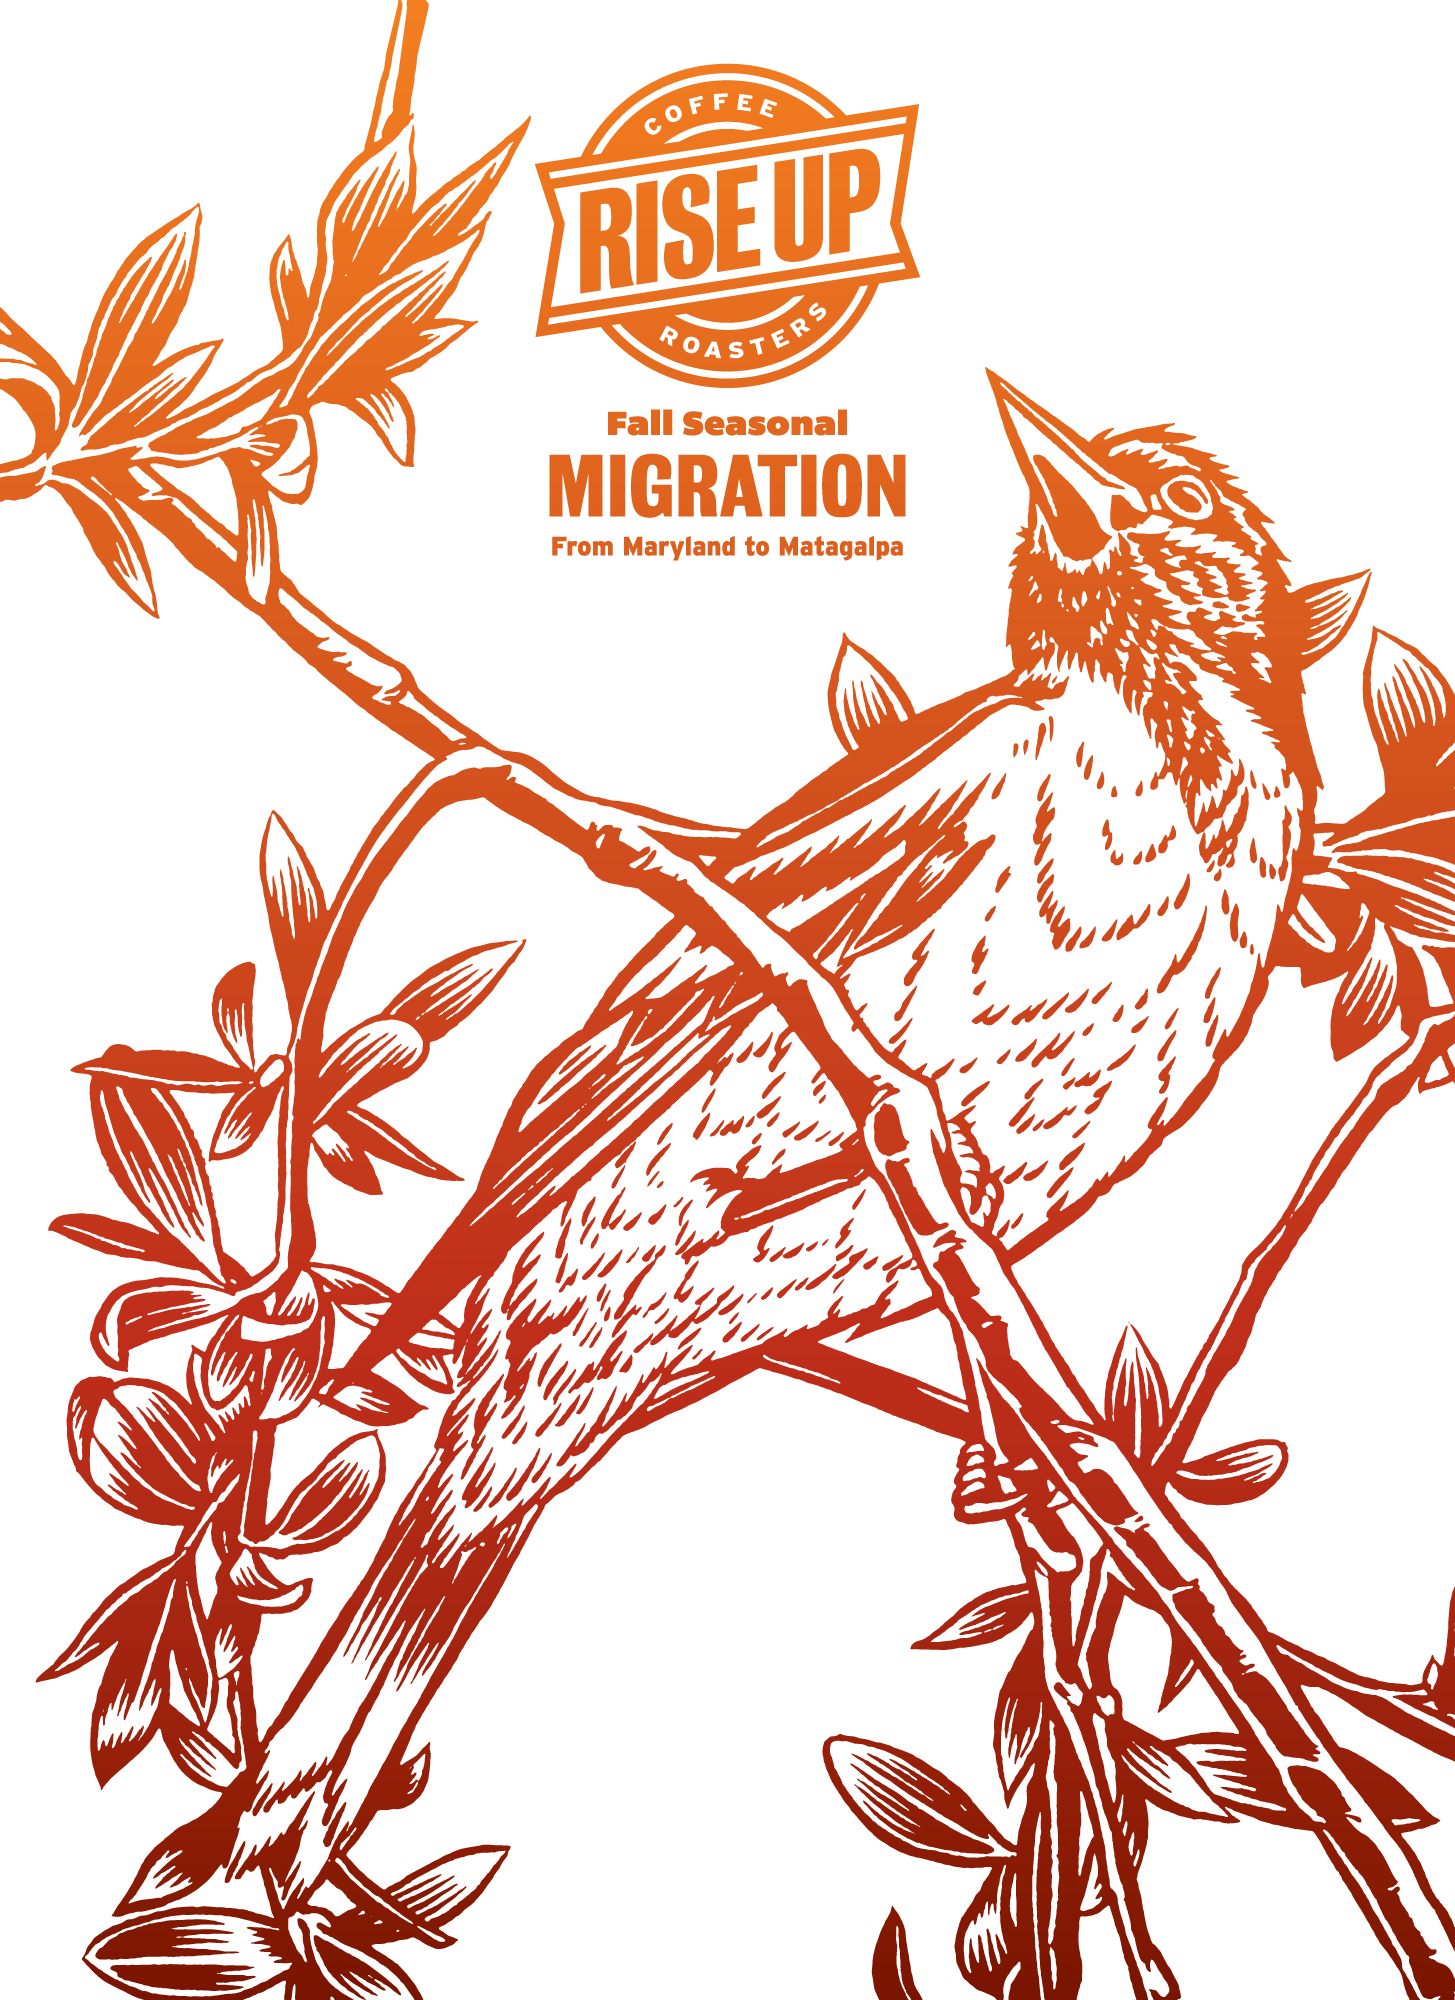 Poster Design, Illustration for Rise Up Coffee Roasters